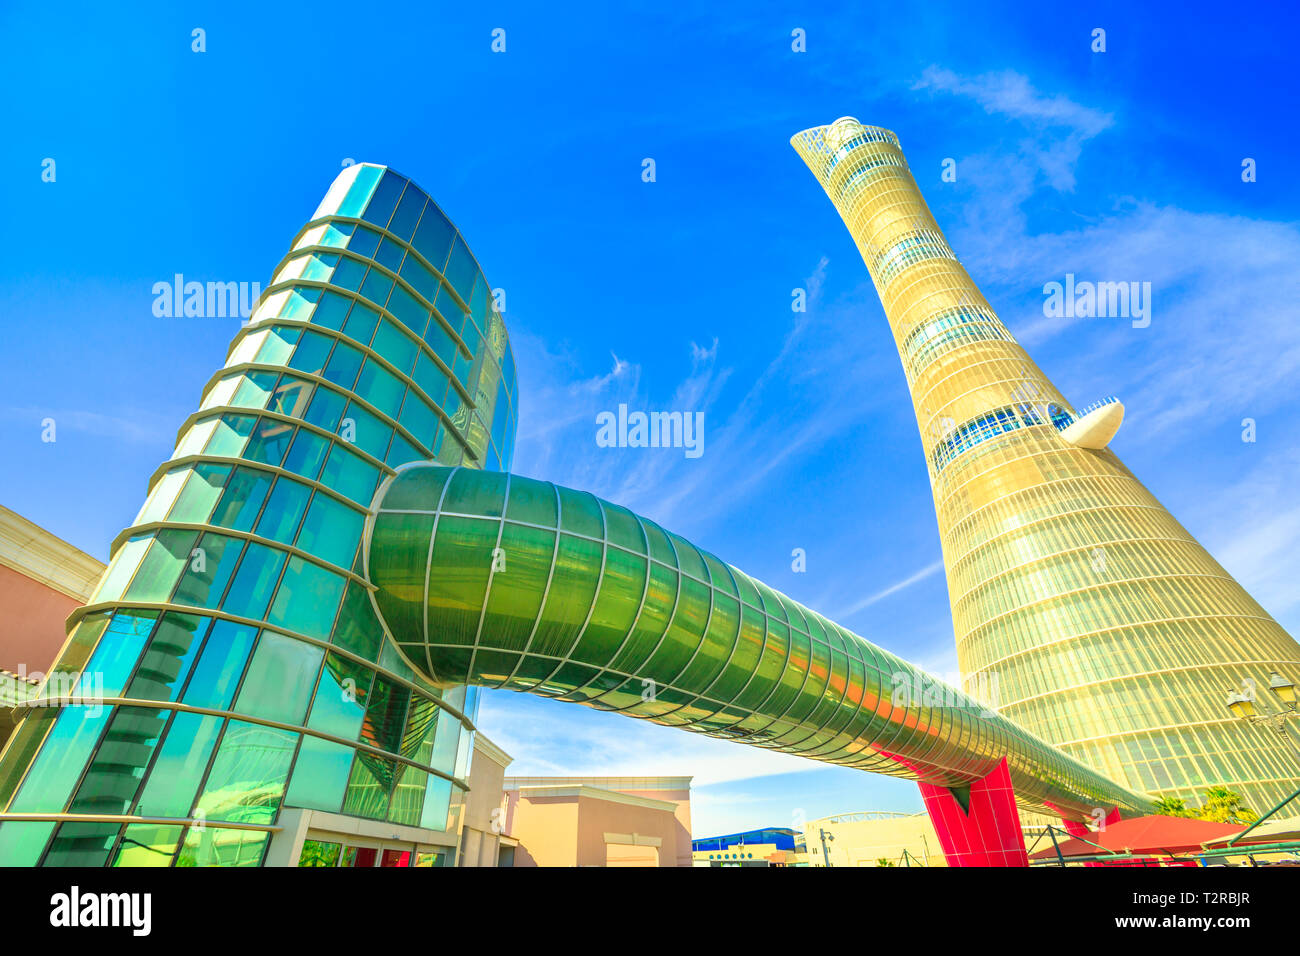 Doha, Qatar - February 21, 2019: Aspire Tower or The Torch Doha